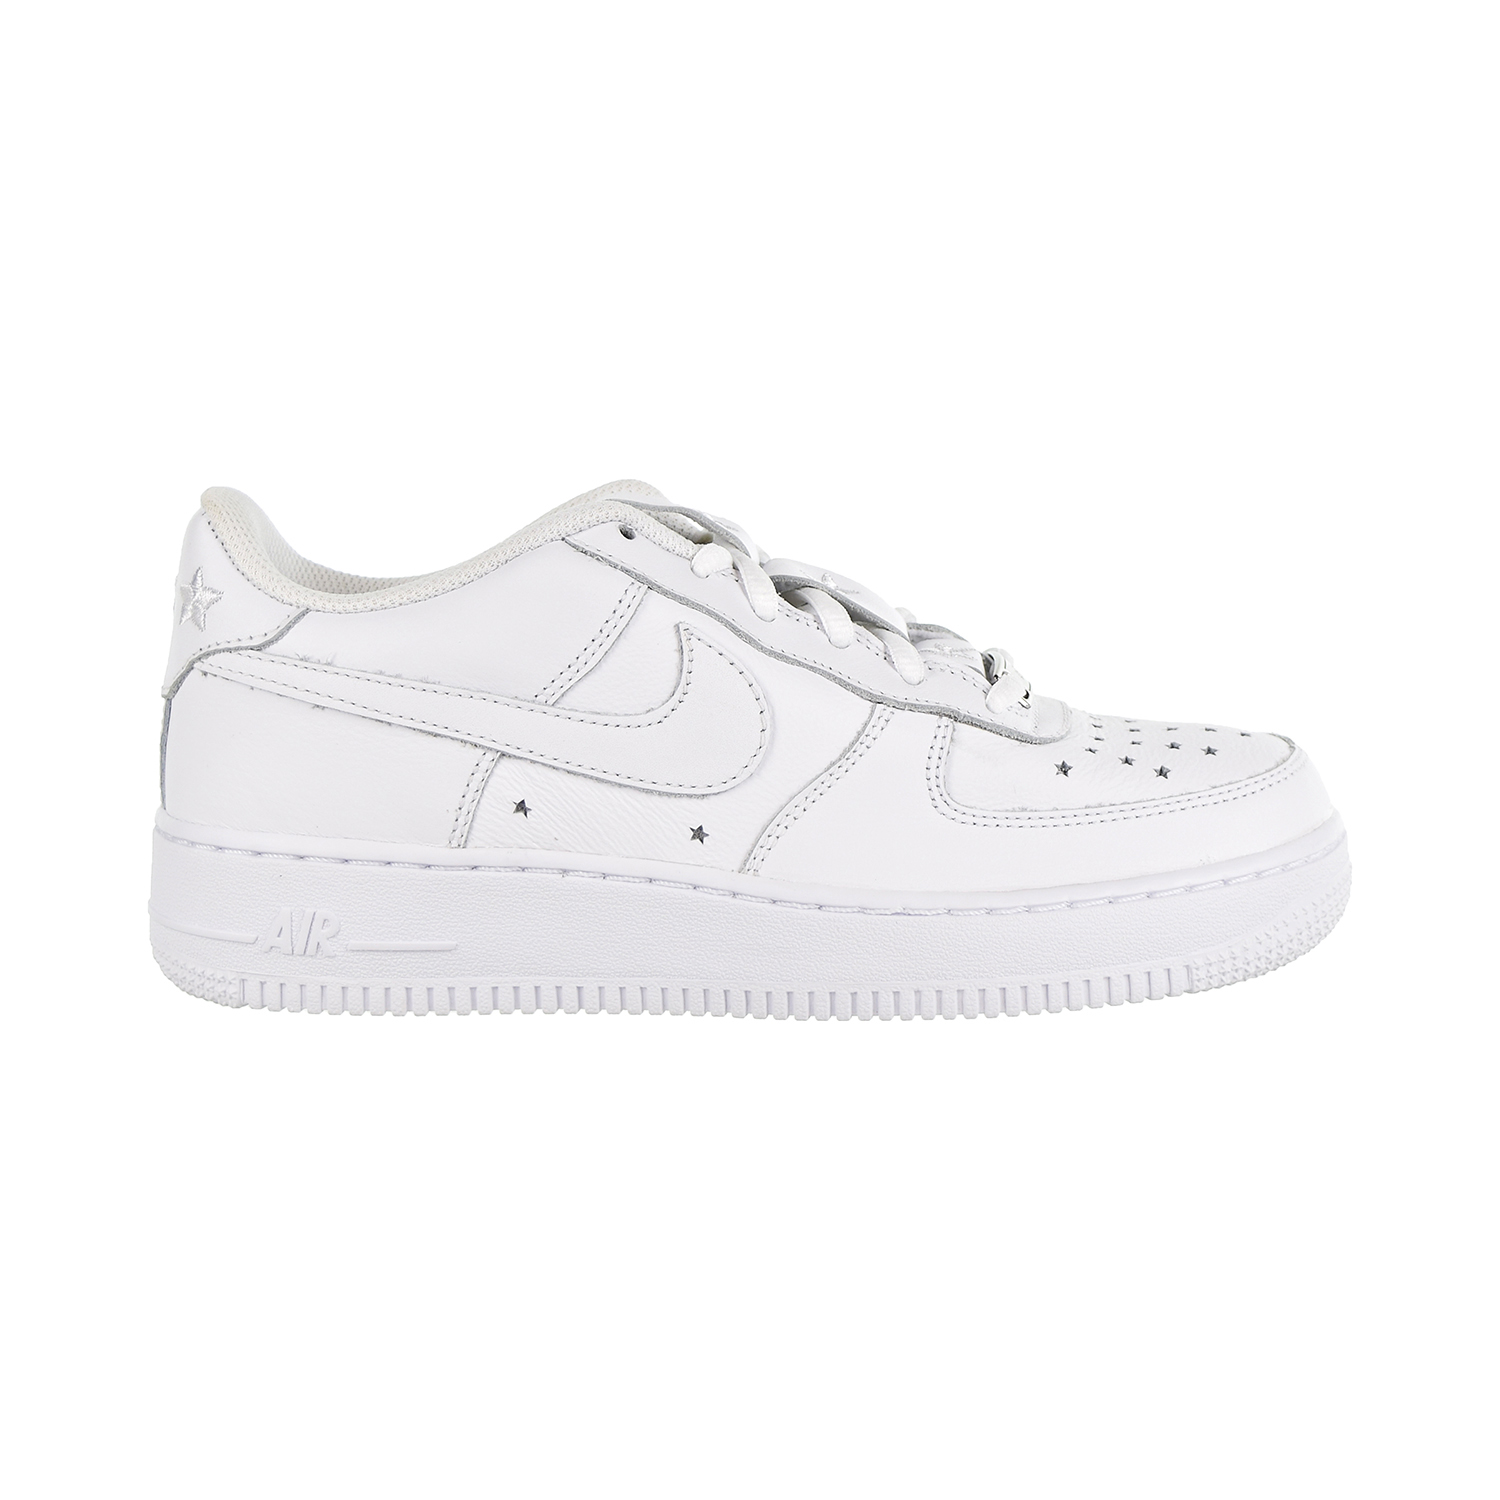 more photos cc248 19742 Details about Nike Air Force 1 QS Soft Leather GS Big Kids  Shoes  White White Navy AR0688-100